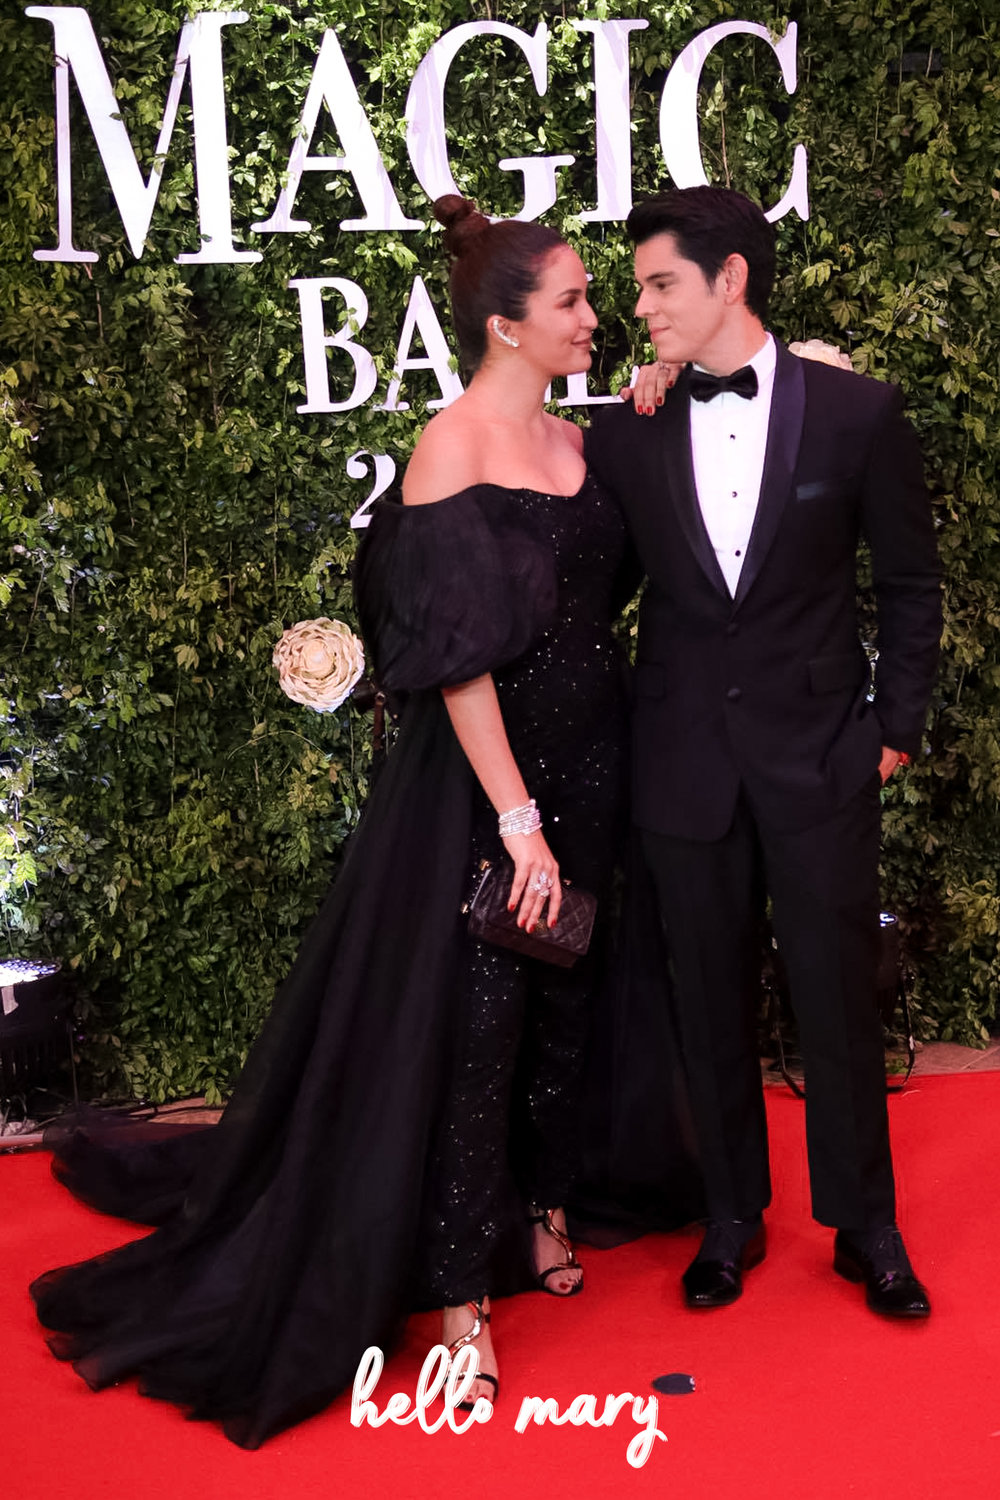 Richard Gutierrez & Sarah Lahbati - Just look at the way they look at each other. They're so crazy in love! I hate the sleeve on Sarah's gown though.